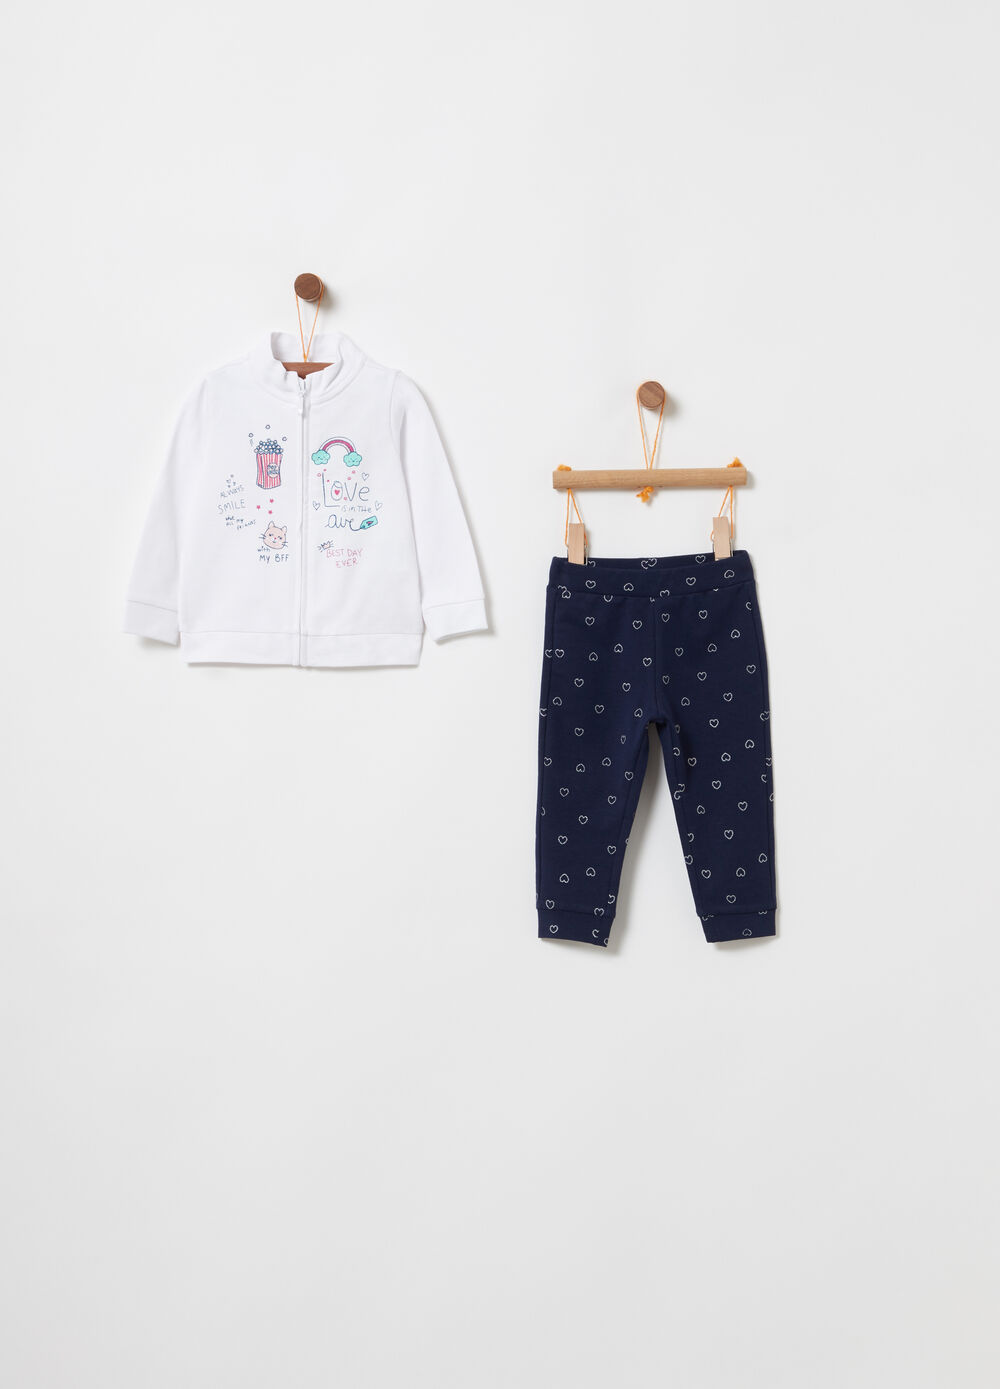 Jogging set with sweatshirt and trousers with hearts